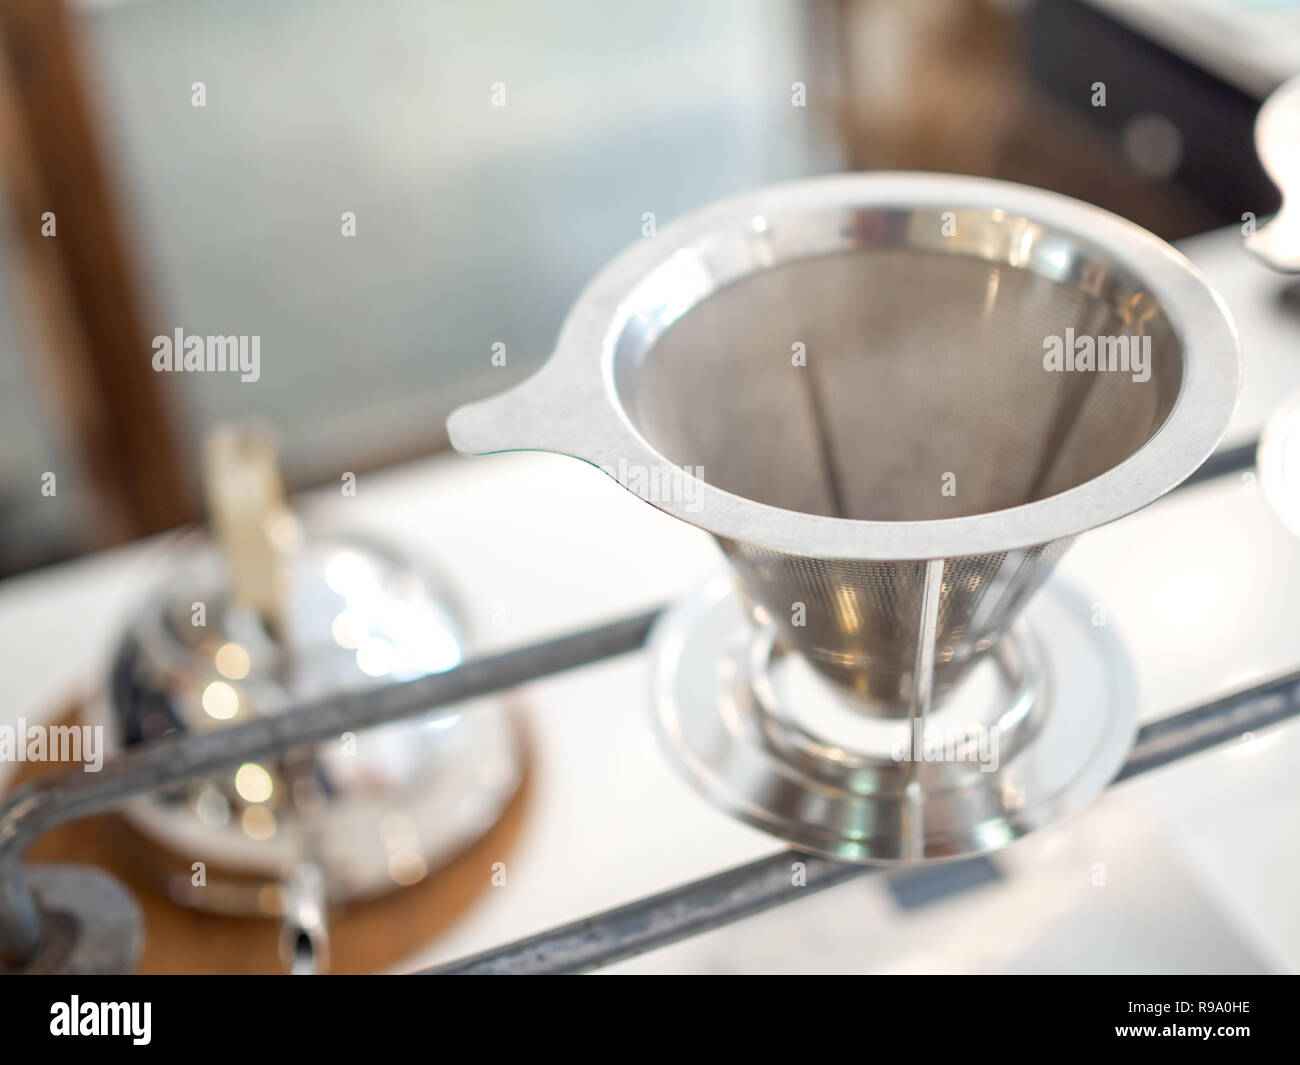 Stainless steel coffee filter reusable funnel coffee dripper, V-type filter cup with copy space. - Stock Image